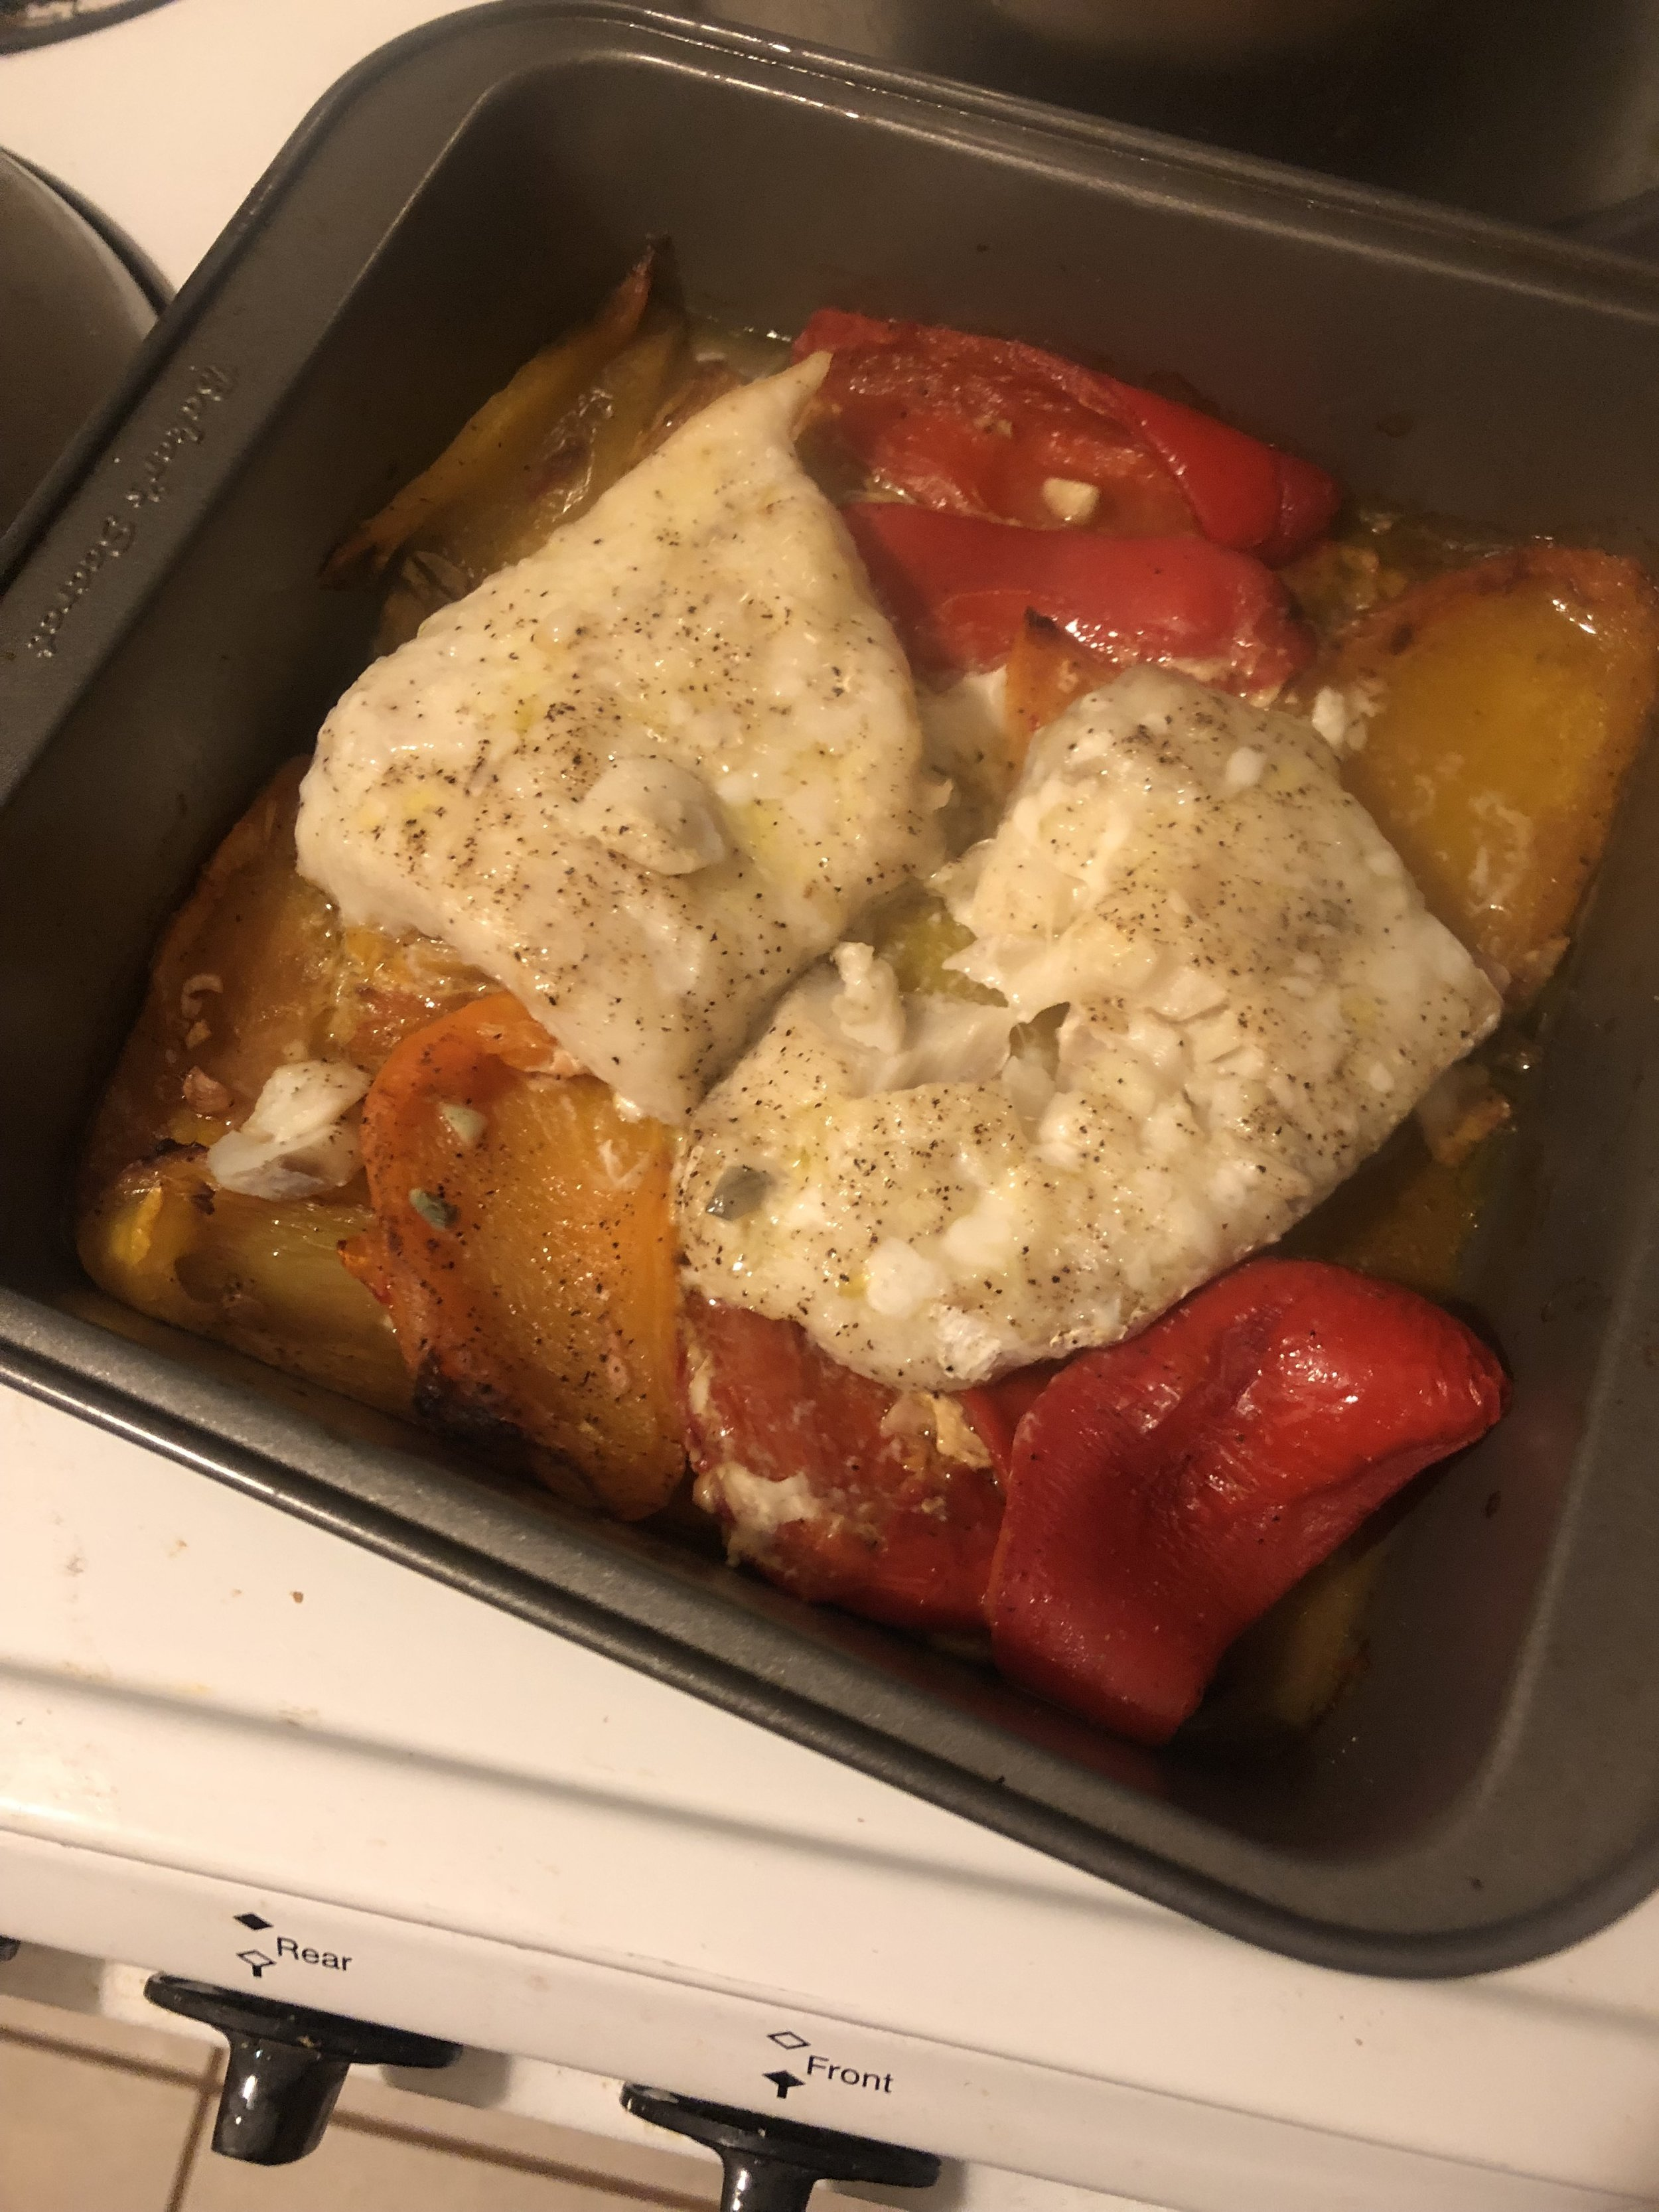 Nestle cod into bell pepper mixture, drizzle with 2 Tbsp. oil, and season with salt and black pepper. Roast on center rack until flesh is opaque throughout and flakes easily when pressed, 25–30 minutes. Let rest 10 minutes.